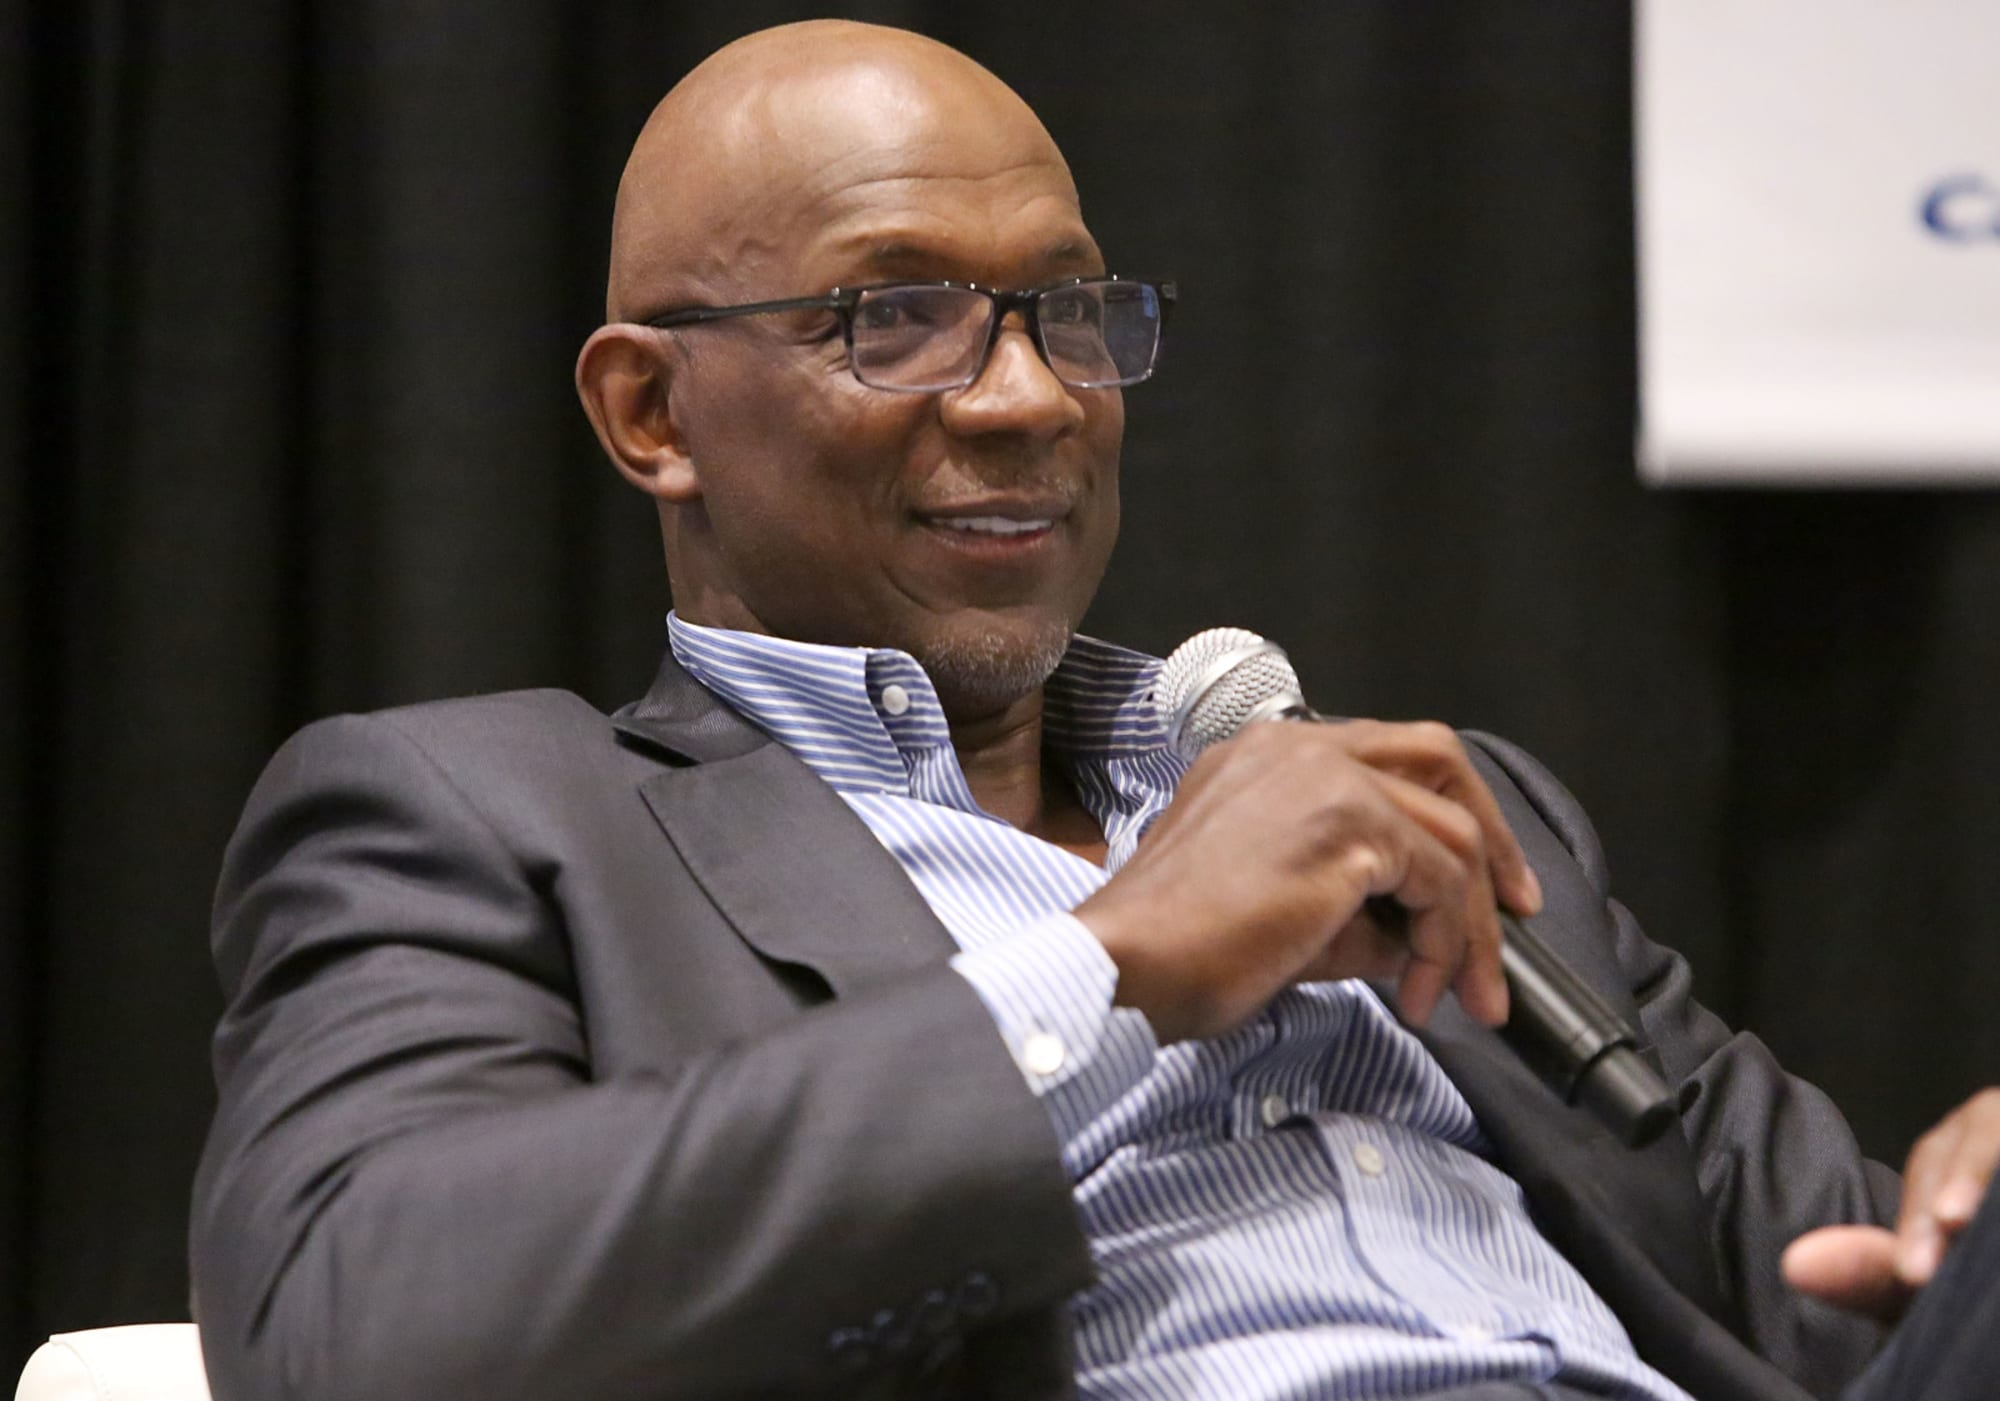 Rockets Clyde Drexler doesn't believe NBA return is best